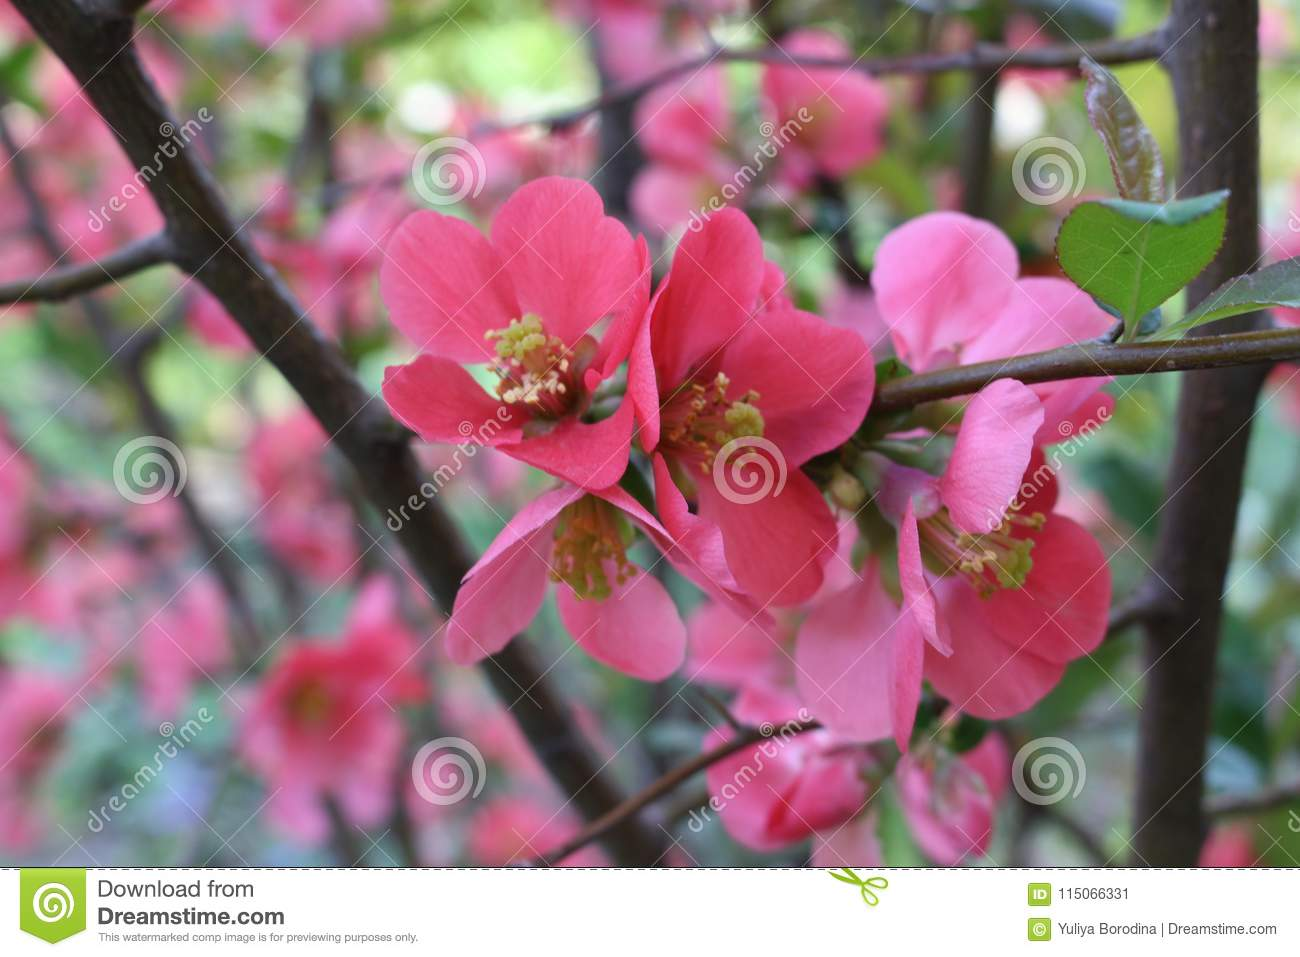 The bush flowered with pink flowers stock image image of sunny download the bush flowered with pink flowers stock image image of sunny flowered mightylinksfo